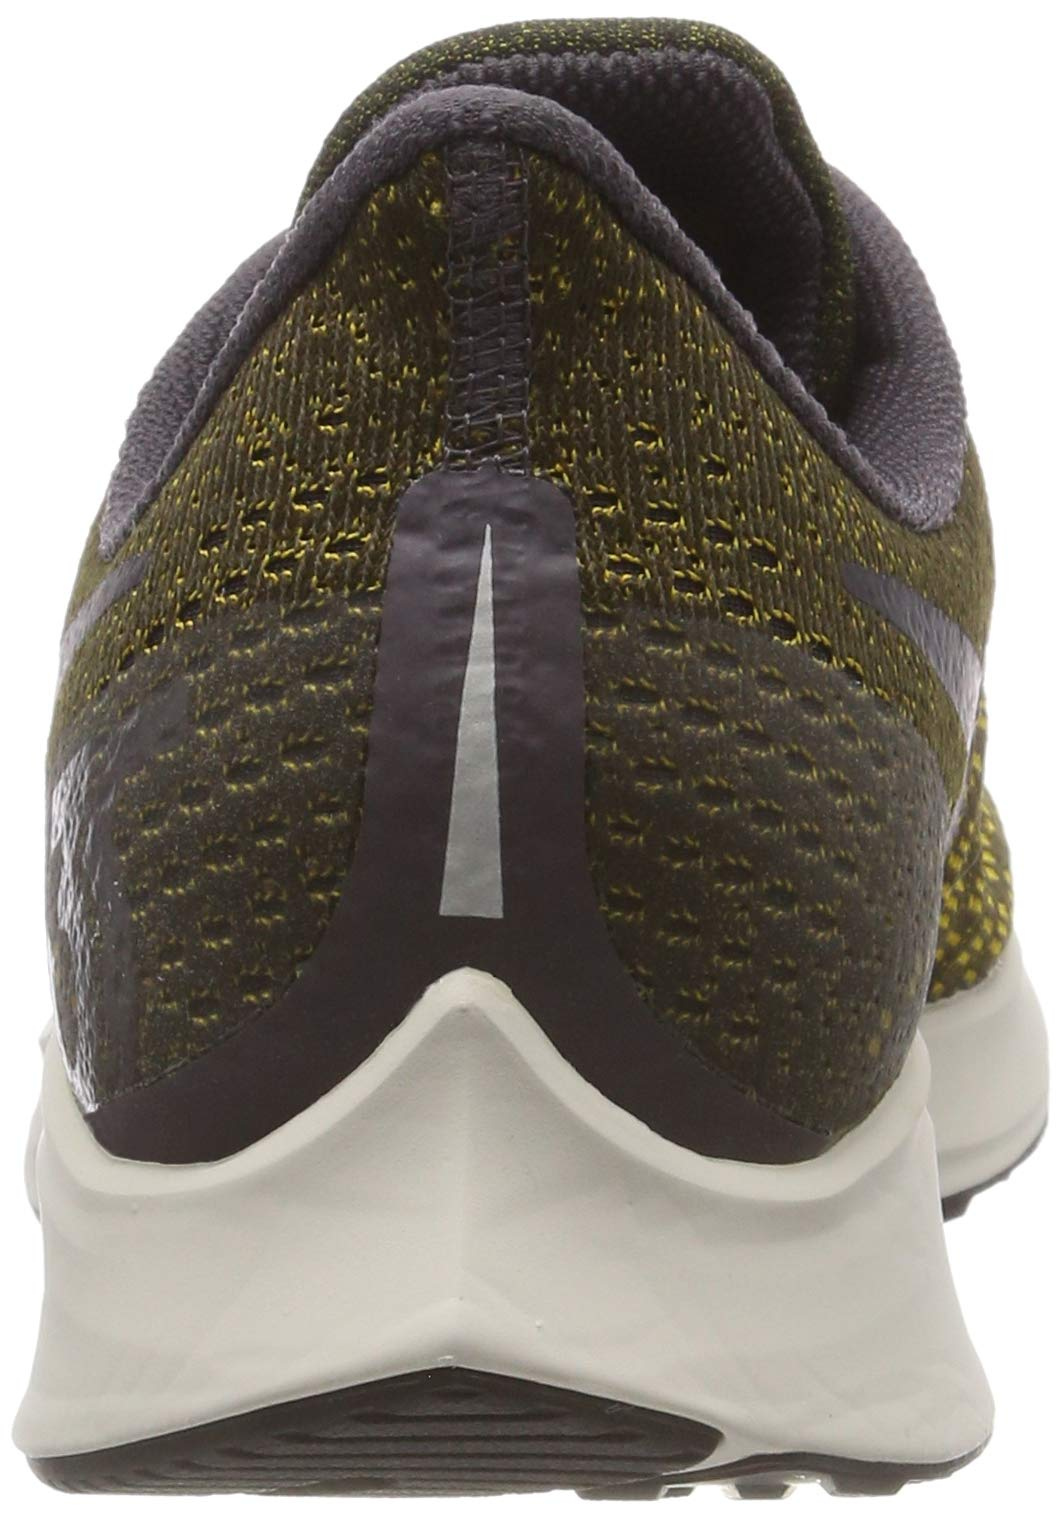 NIKE Men's Air Zoom Pegasus 35 Running Shoes (6, Olive) by Nike (Image #2)